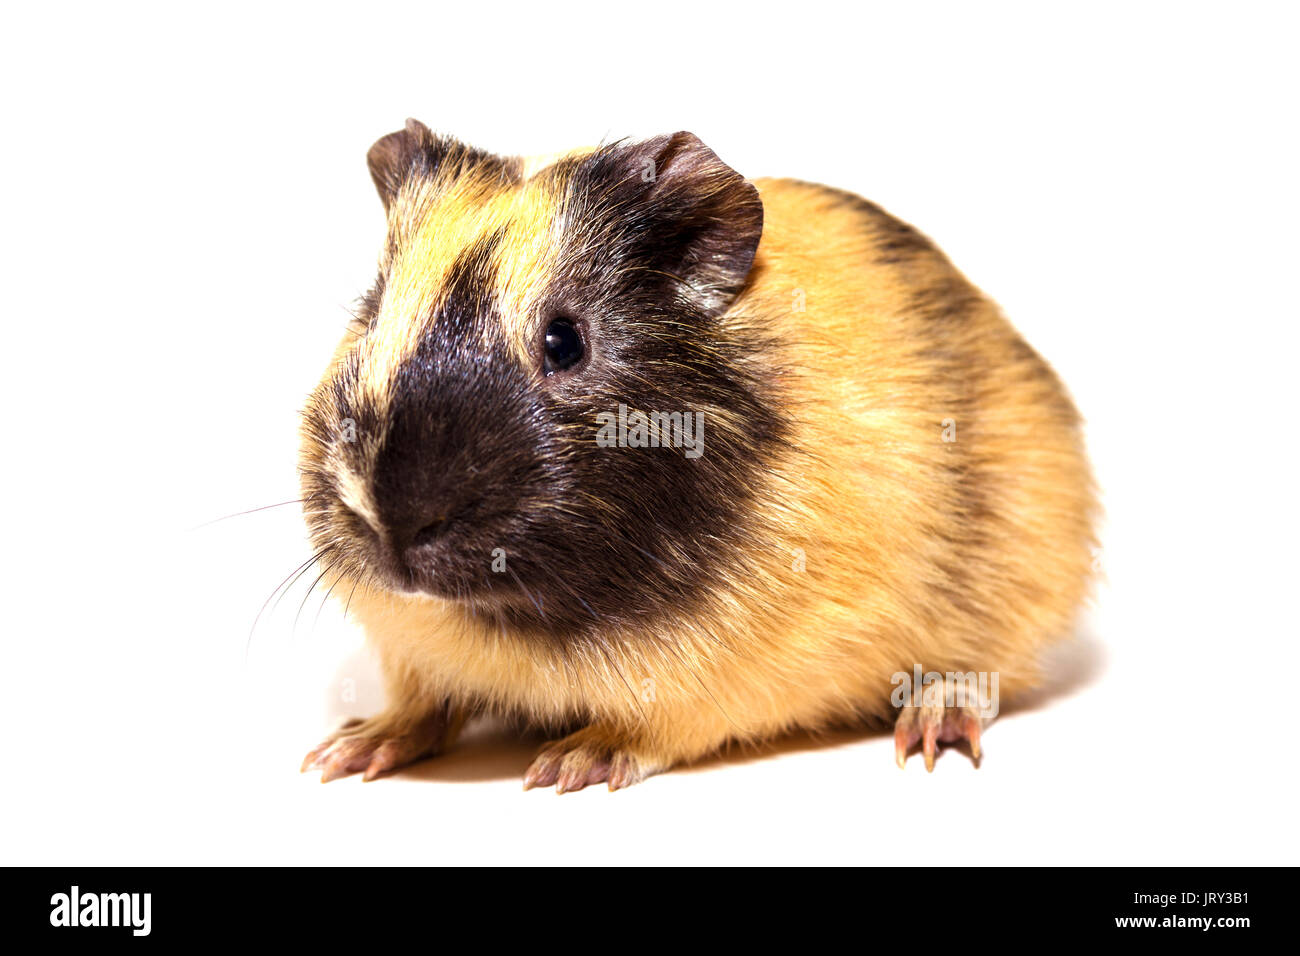 Fluffy cute rodent - guinea pig on neutral background - Stock Image